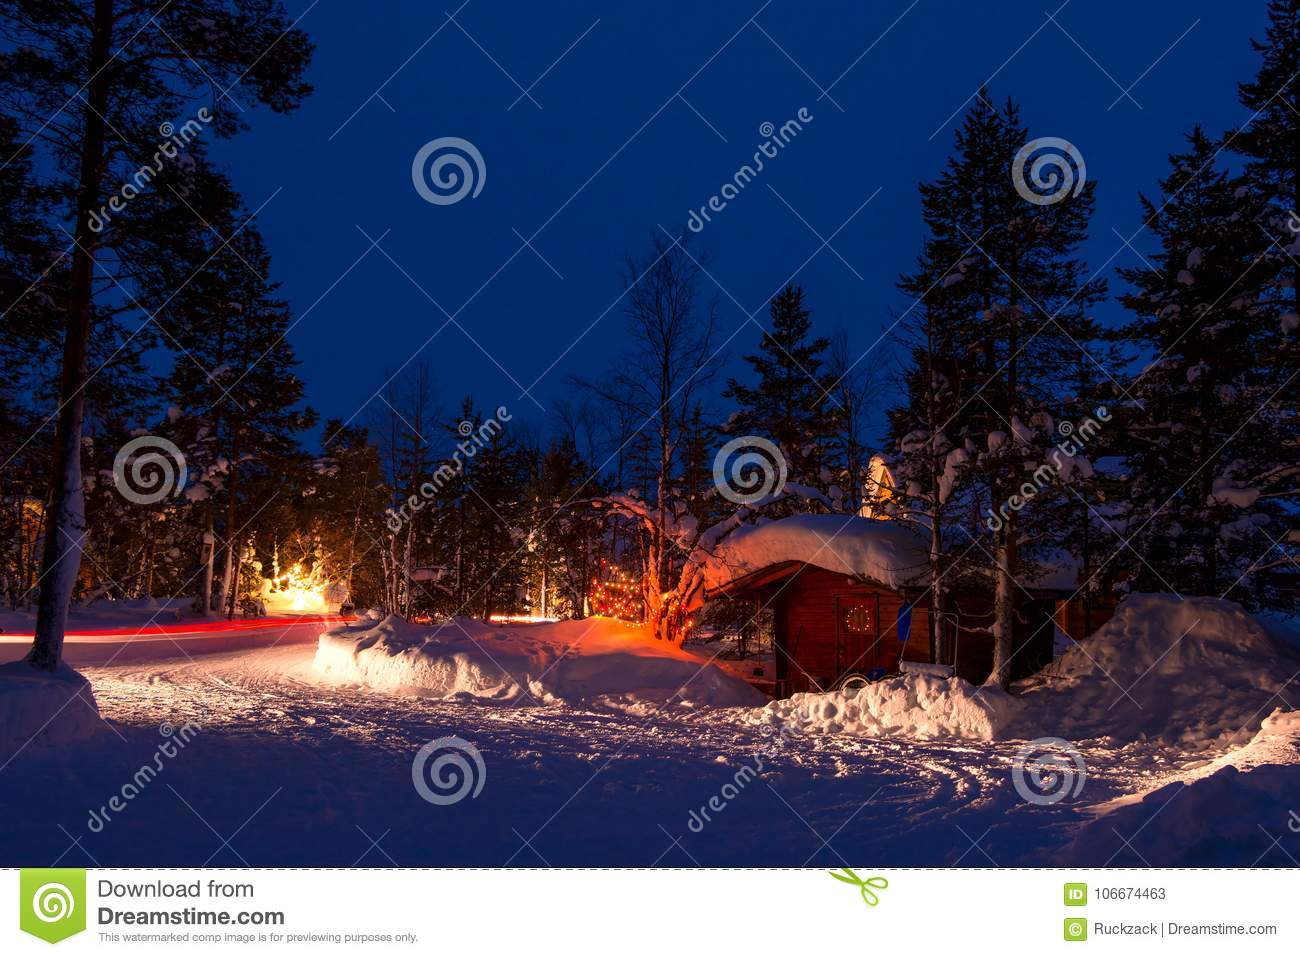 Christmas Lights For Camping.Car Lights In A Winter Forest Camping Stock Image Image Of